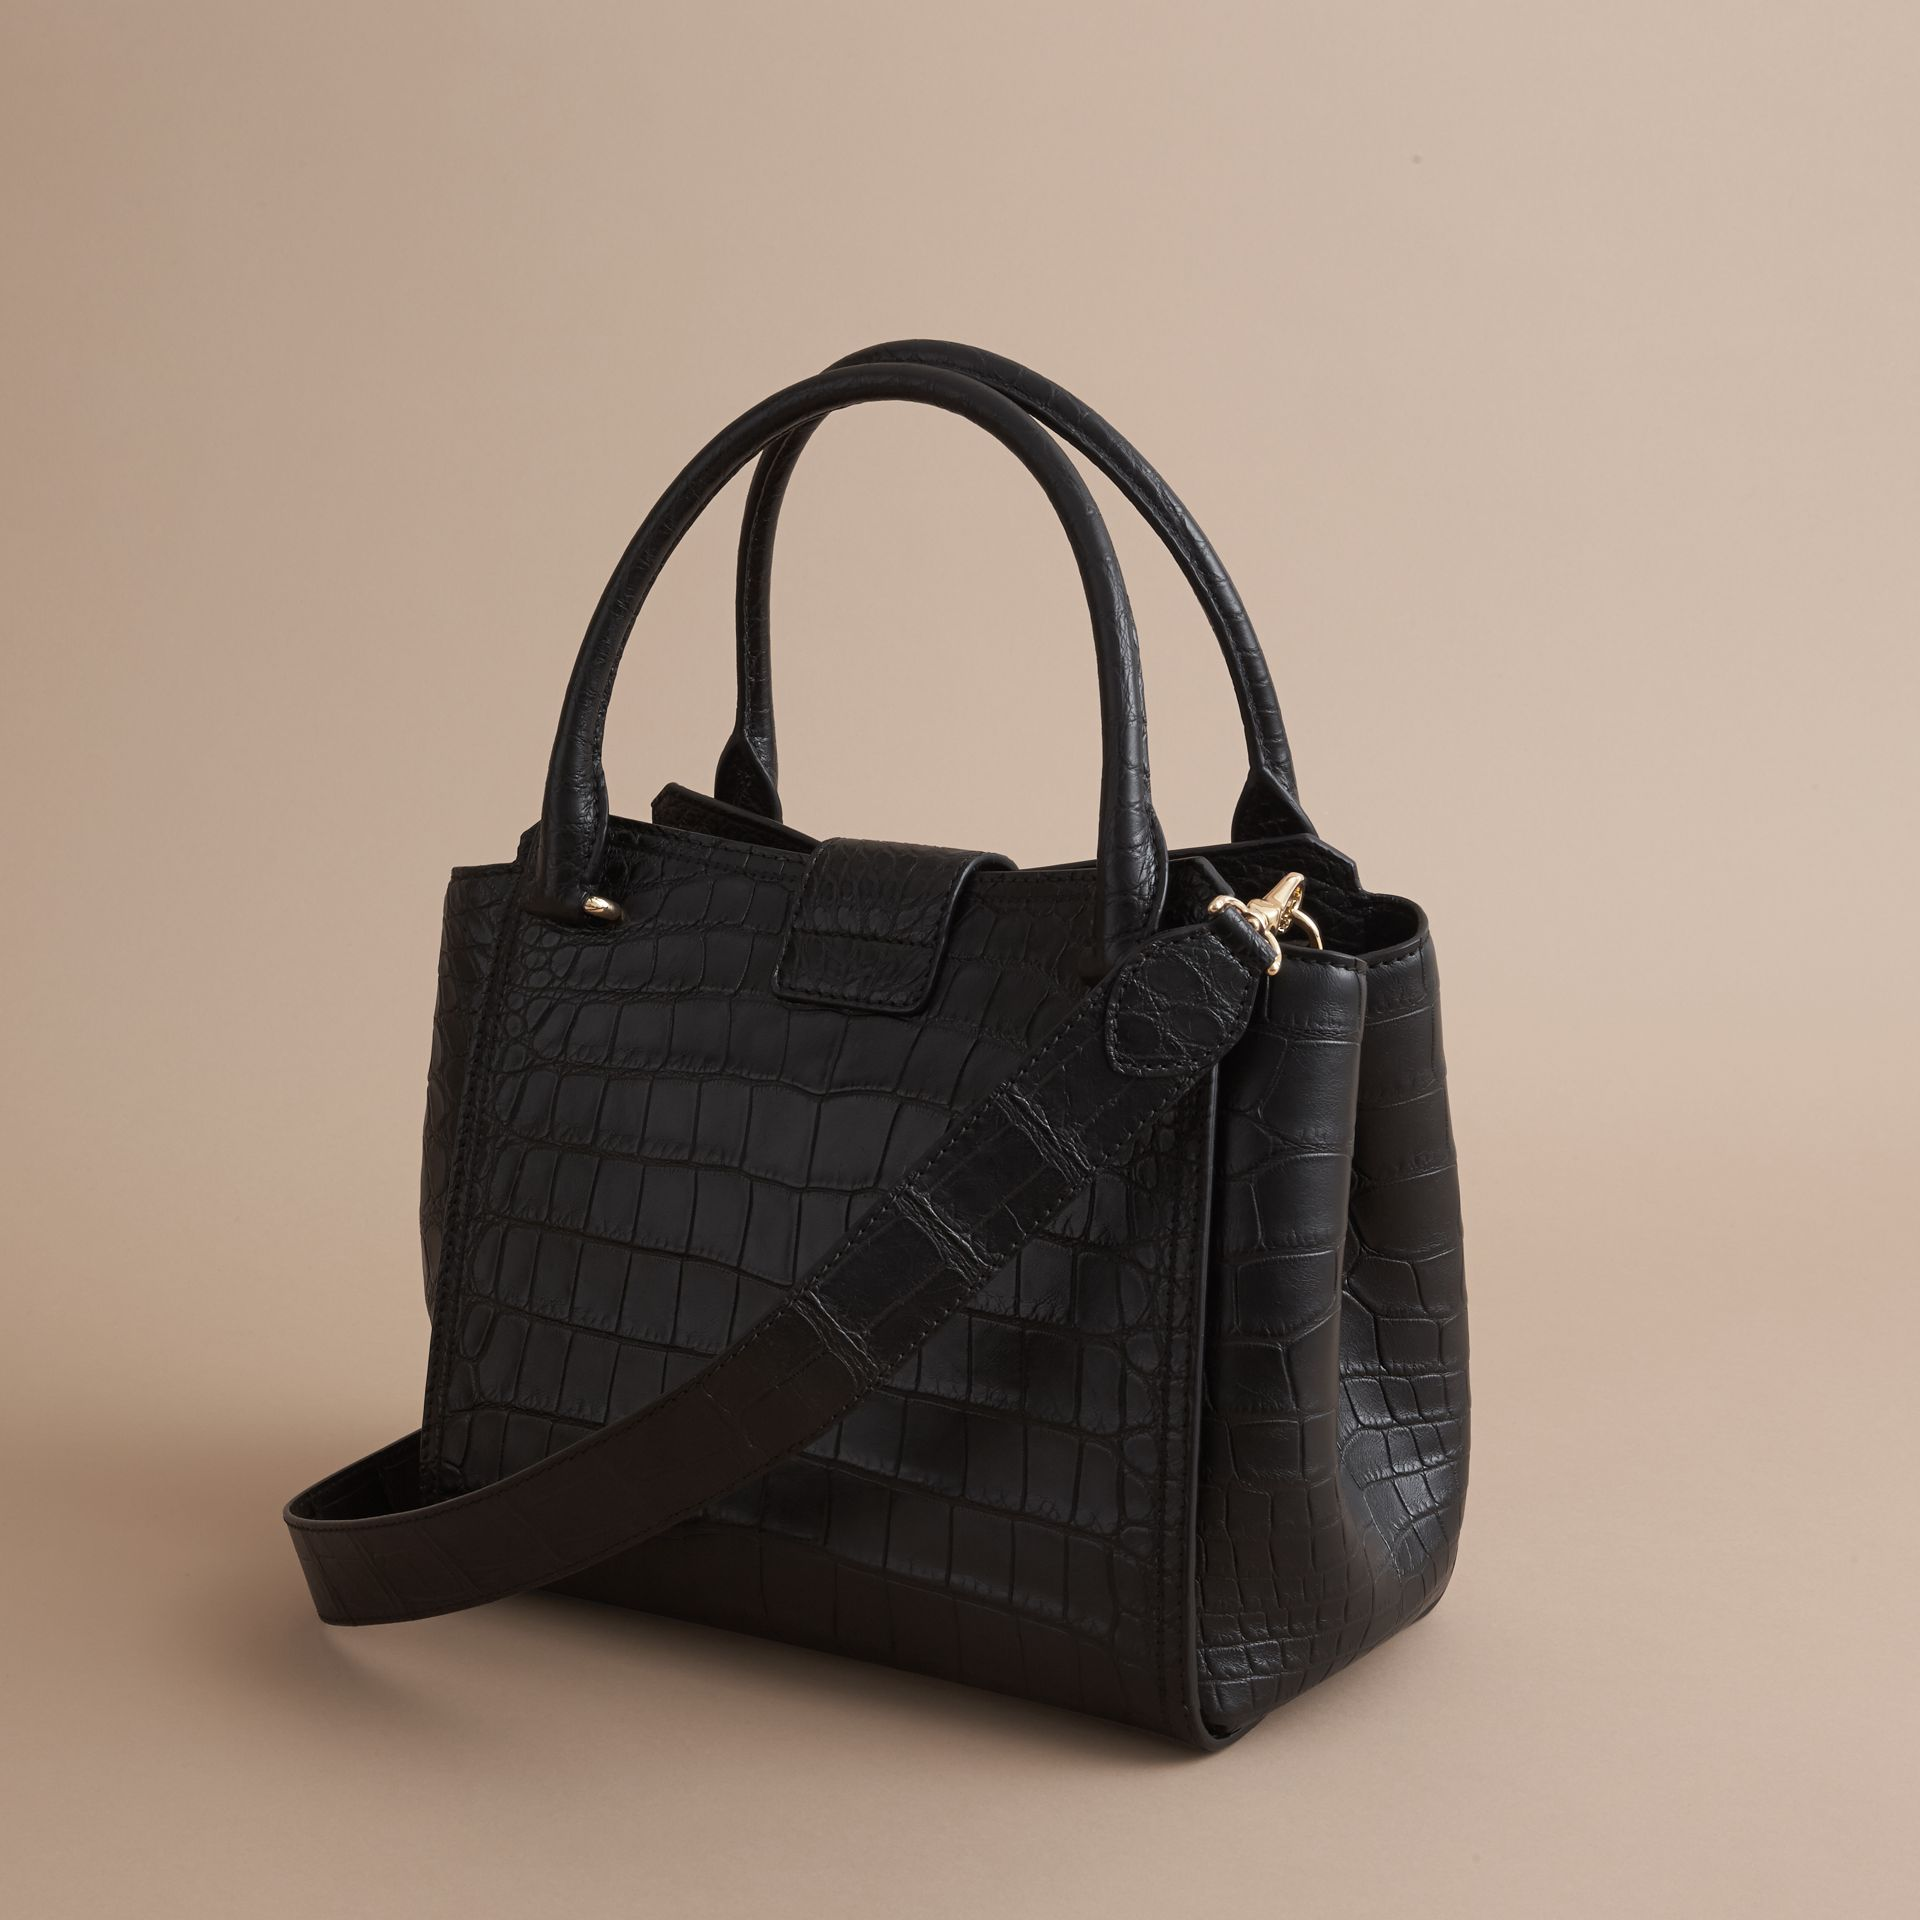 Borsa tote The Buckle media in alligatore (Nero) - Donna | Burberry - immagine della galleria 3